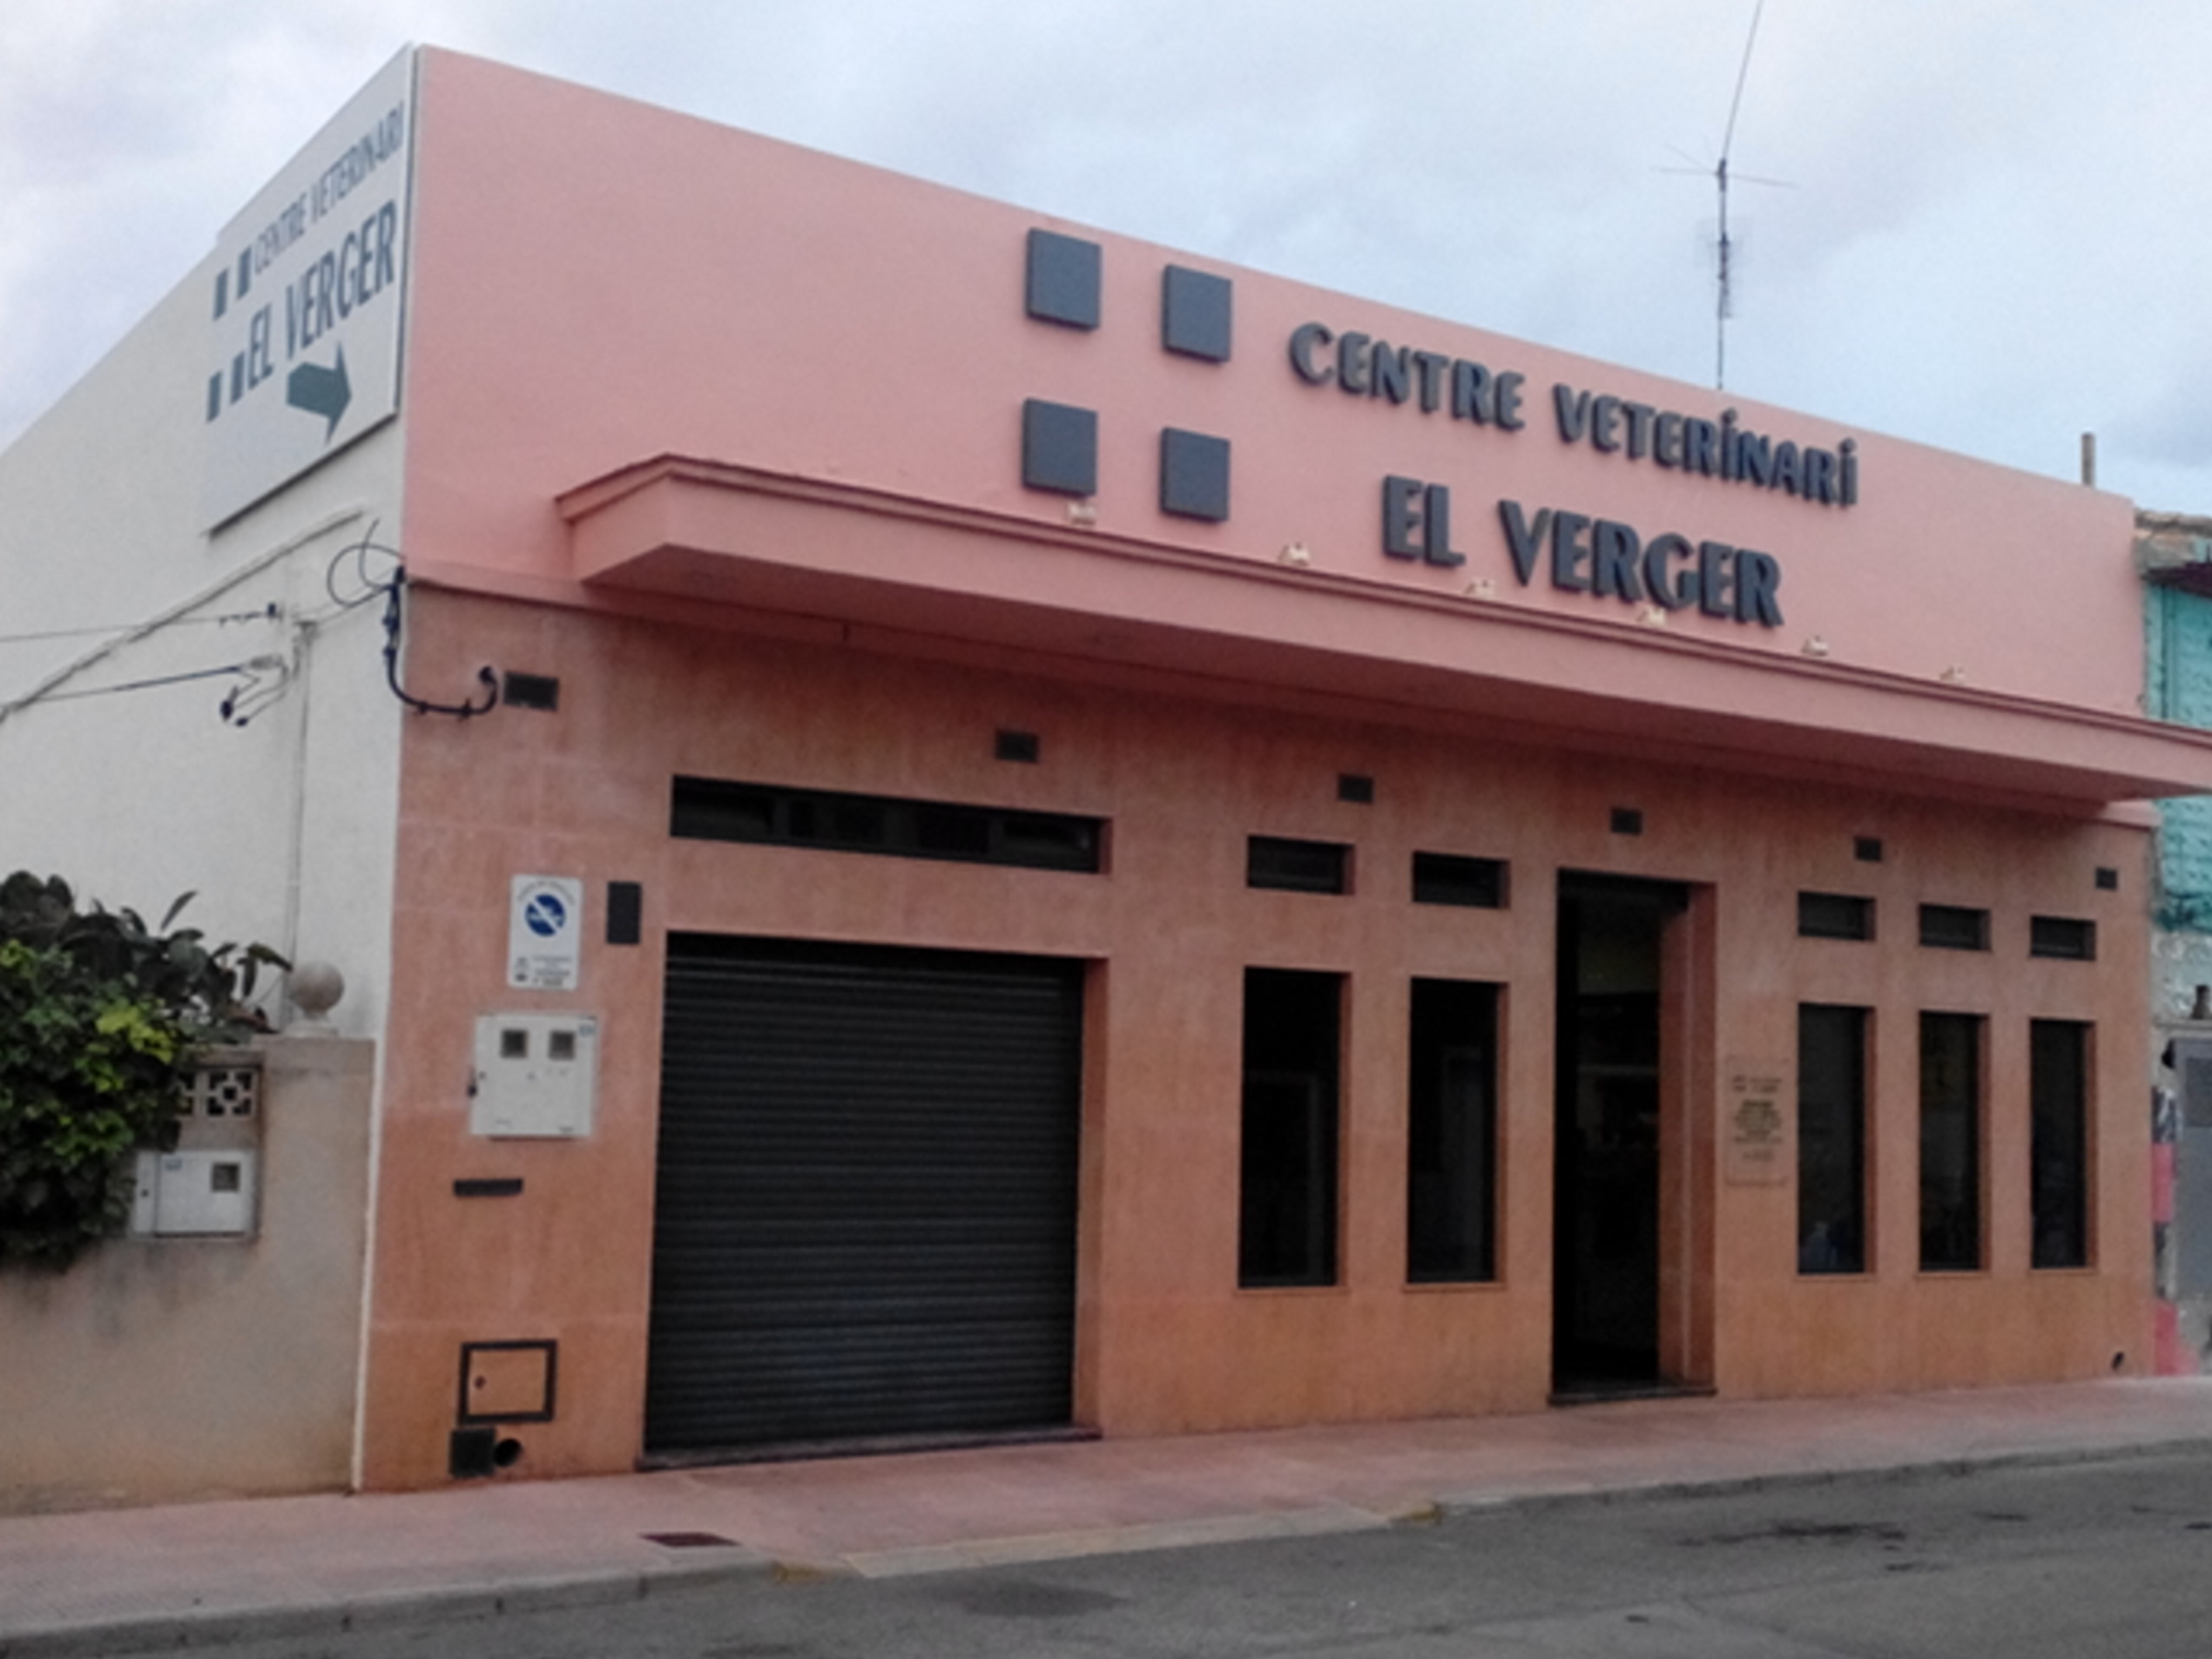 Centre Veterinari El Verger